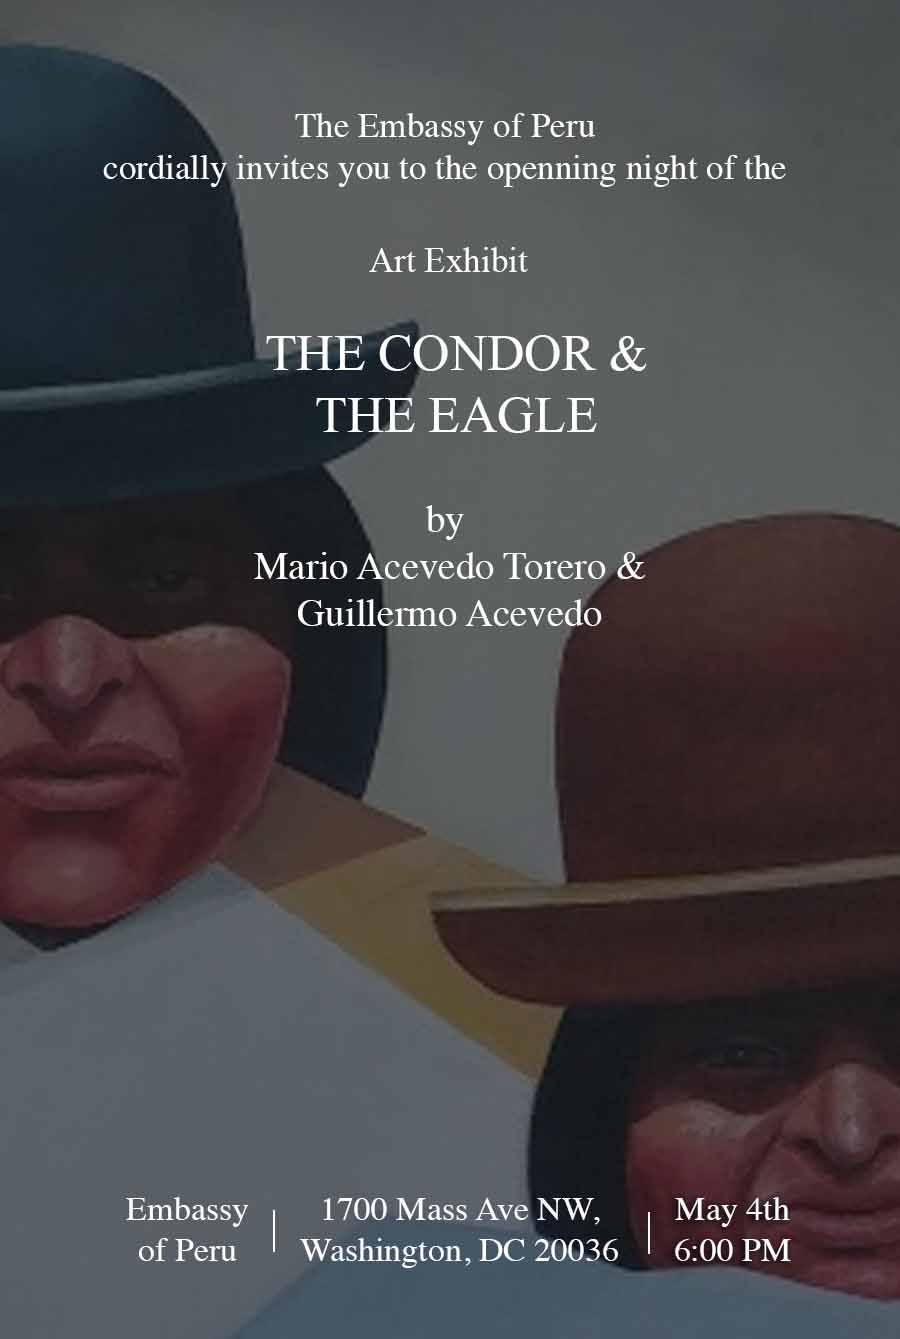 The condor and the eagle.jpg